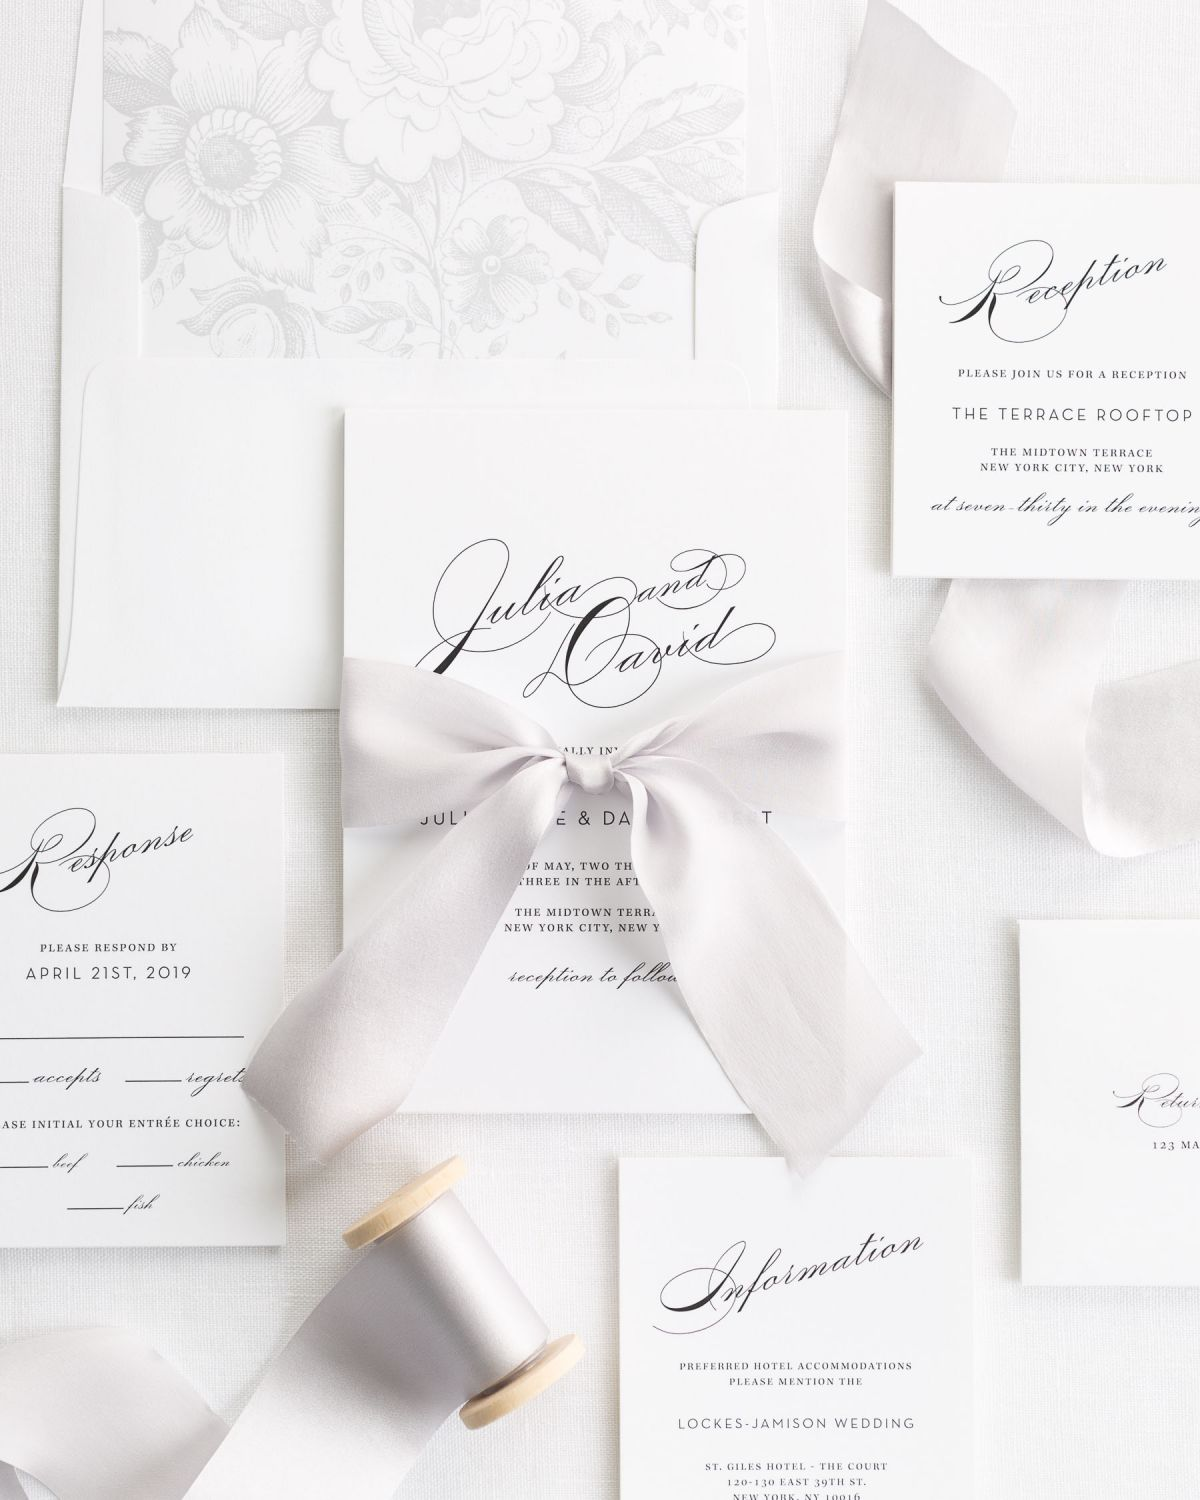 Complete Wedding Invitations with Platinum Ribbon and Enclosures